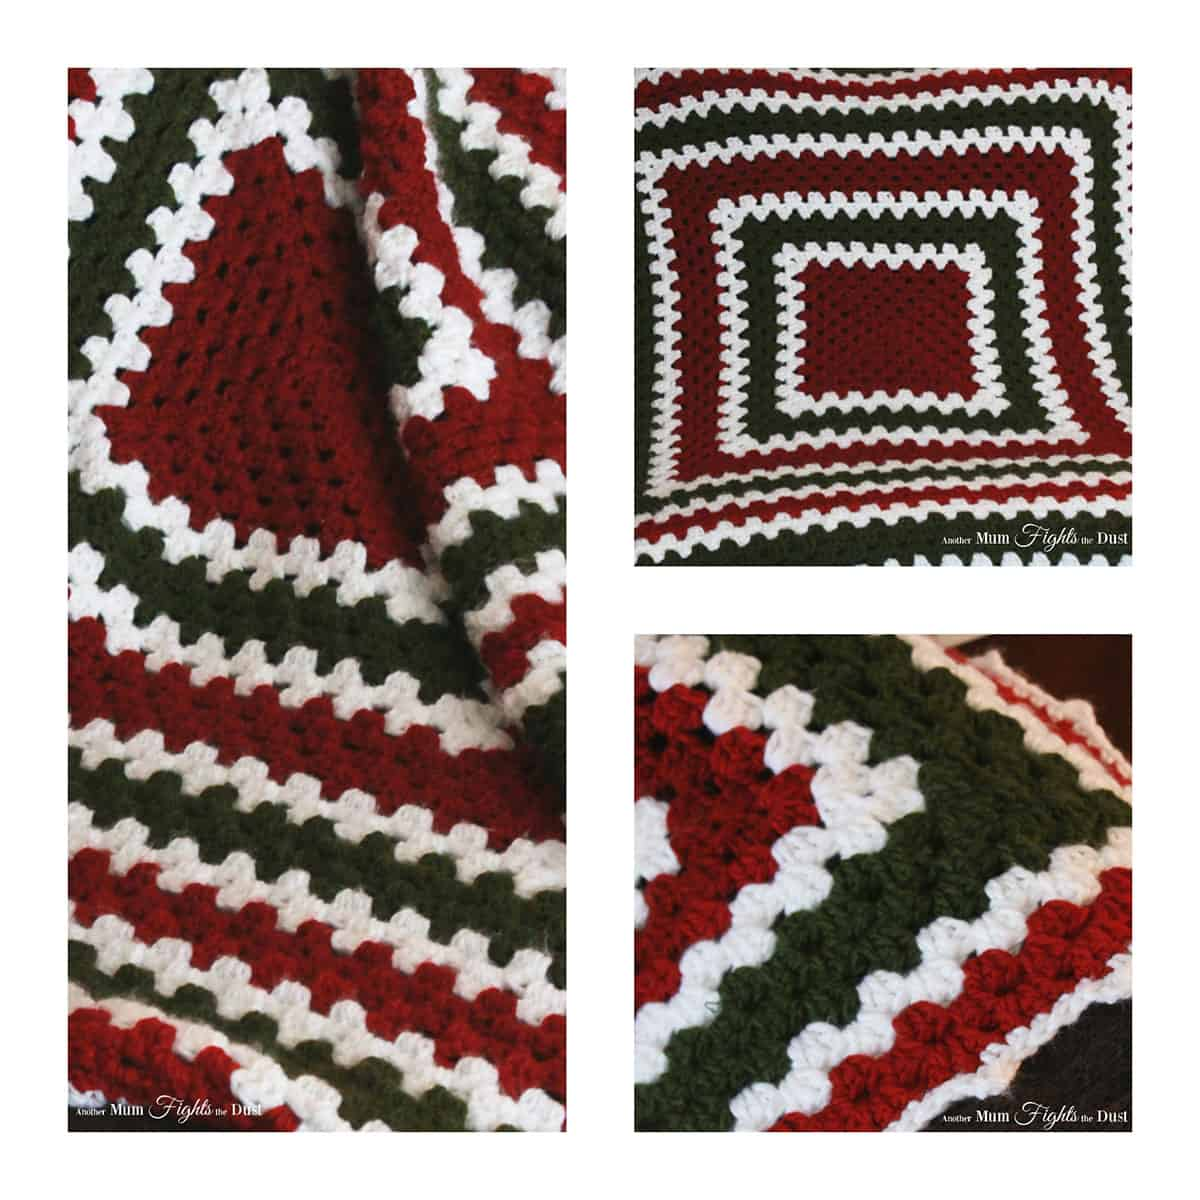 Crochet Christmas Blanket Another Mum Fights The Dust